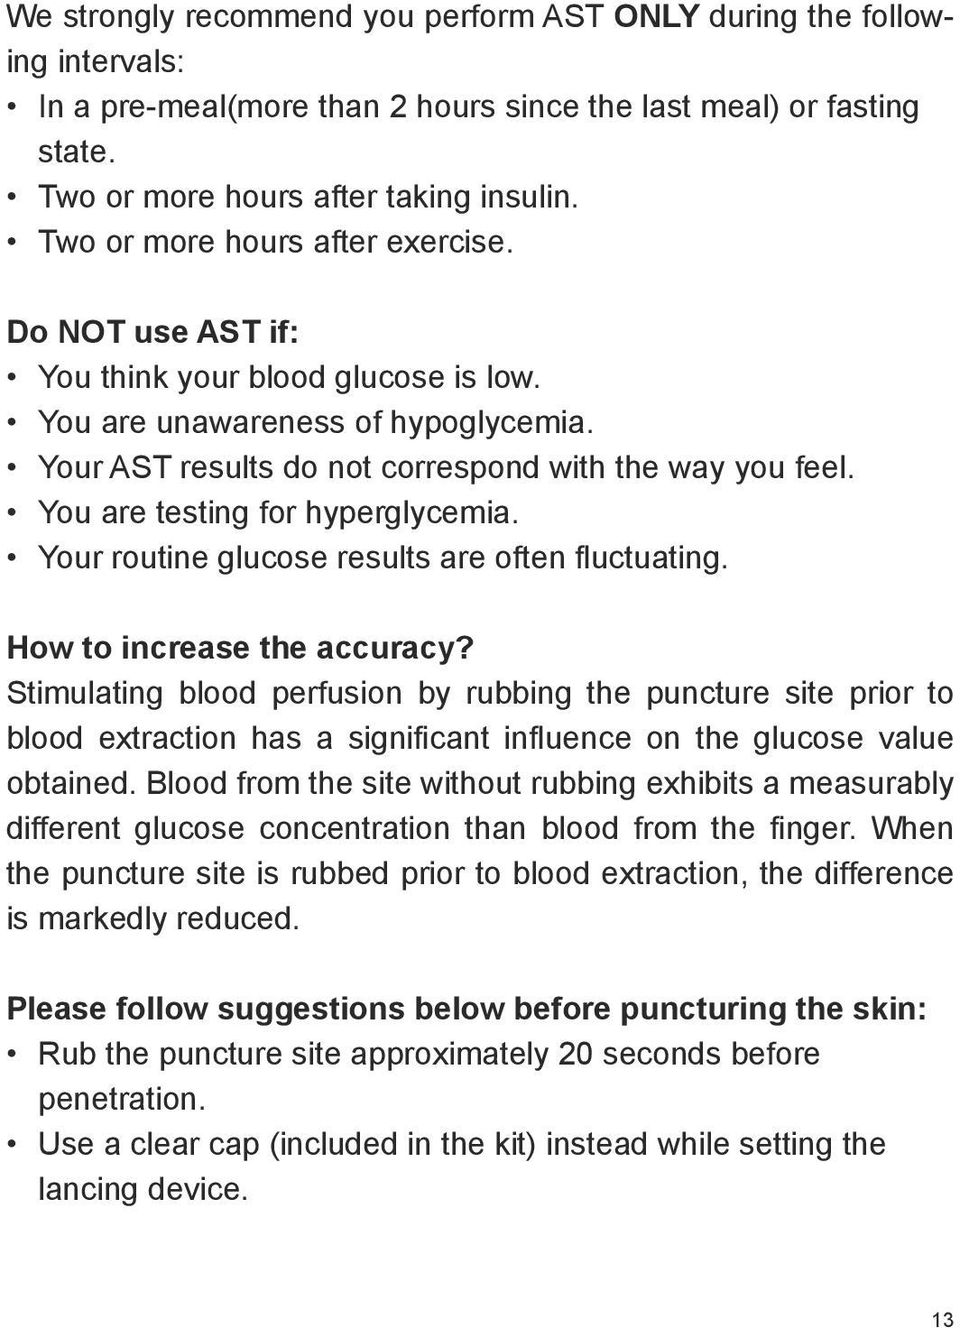 You are testing for hyperglycemia. Your routine glucose results are often fluctuating. How to increase the accuracy?